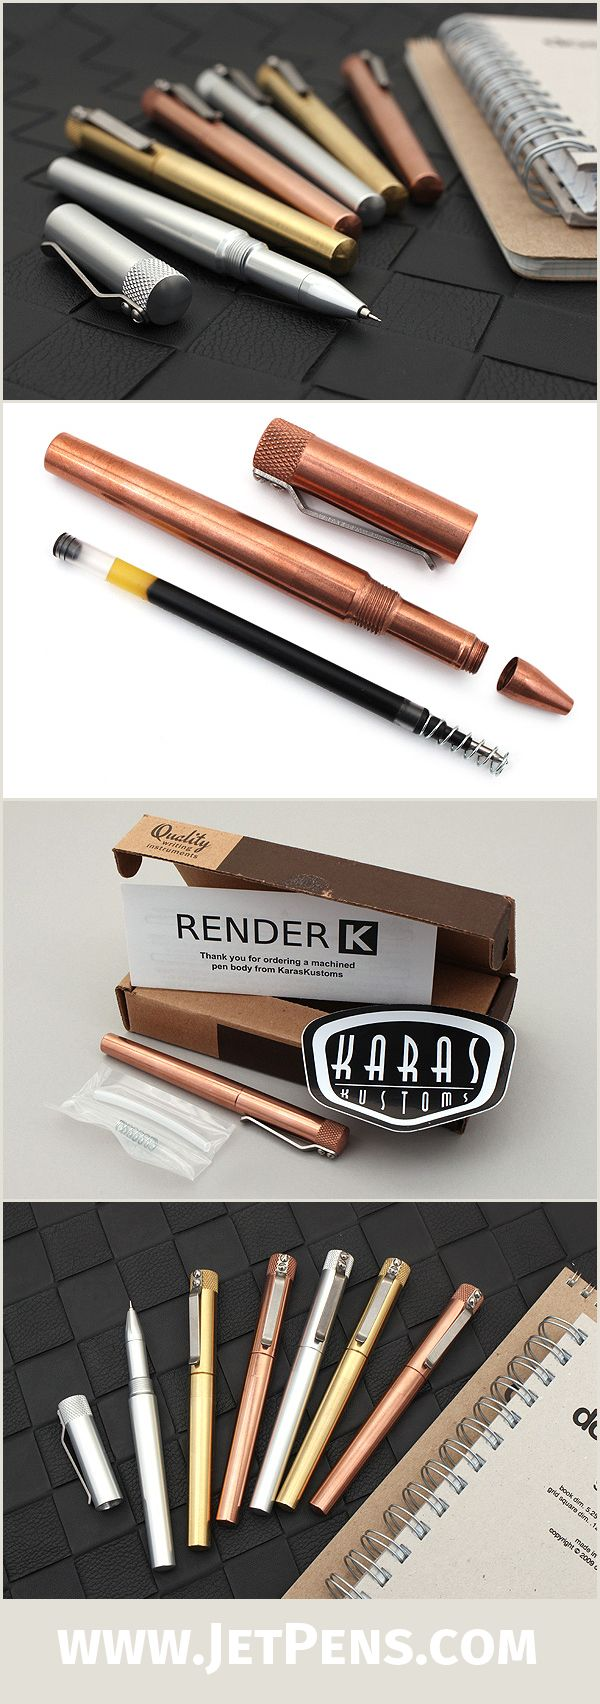 The fully machined Karas Kustoms Render K Pens are designed to accommodate a wide variety of ink refills, including the Hi-Tec-C, G2, Parker, Fisher, and others.